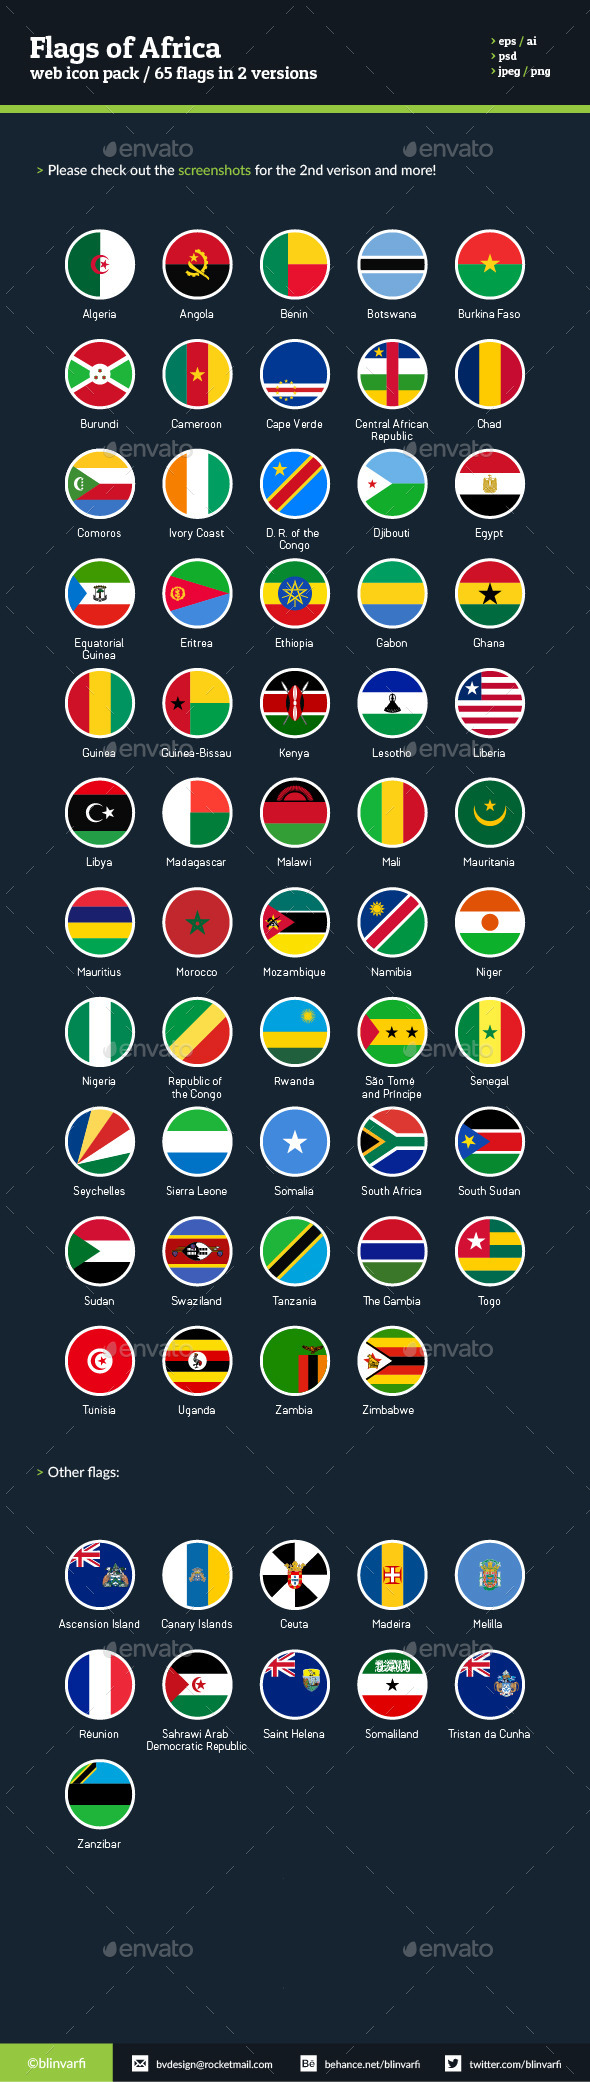 Flags of Africa - Flag Icons - Web Icons